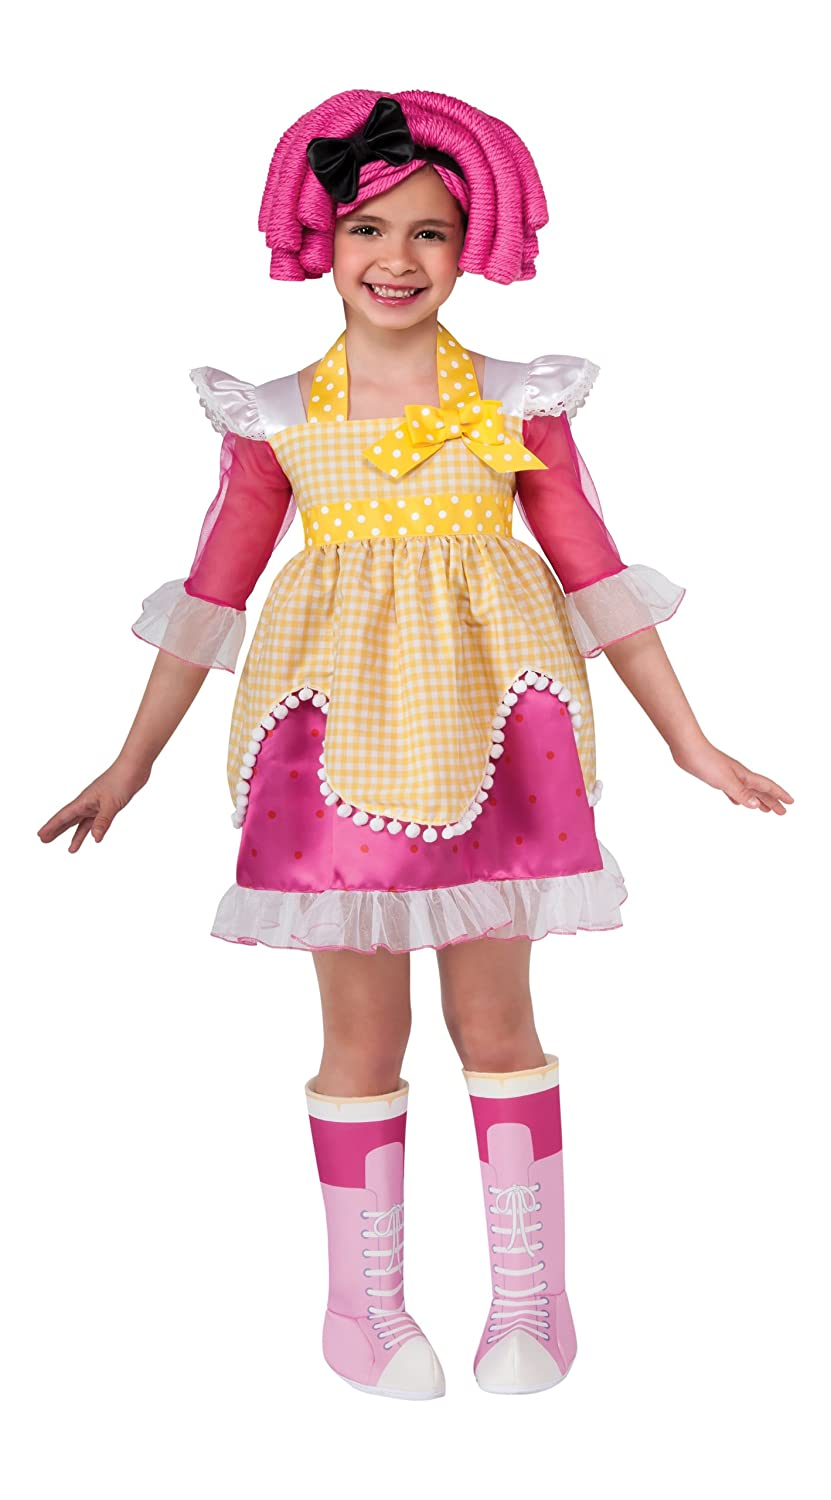 Lalaloopsy Crumbs Sugar Cookie Costume Lalaloopsy Deluxe Crumbs Sugar